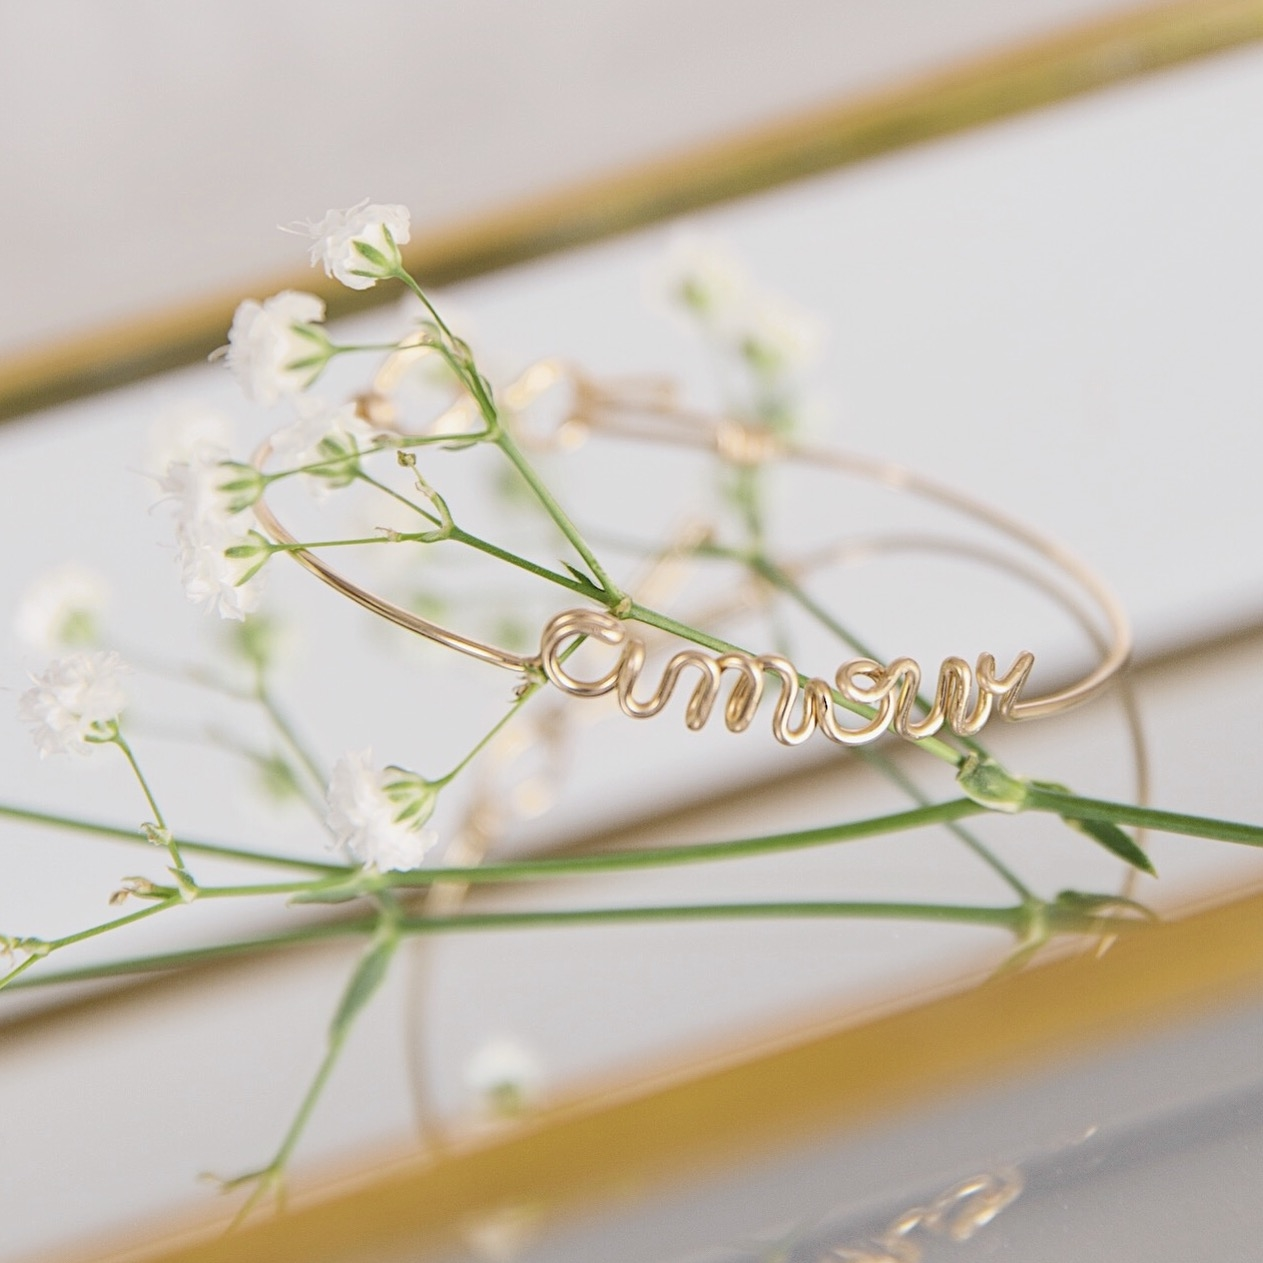 amour-yellow-gold-bracelet-what-jewellery-craftsmanship-means-today-studio-emoi